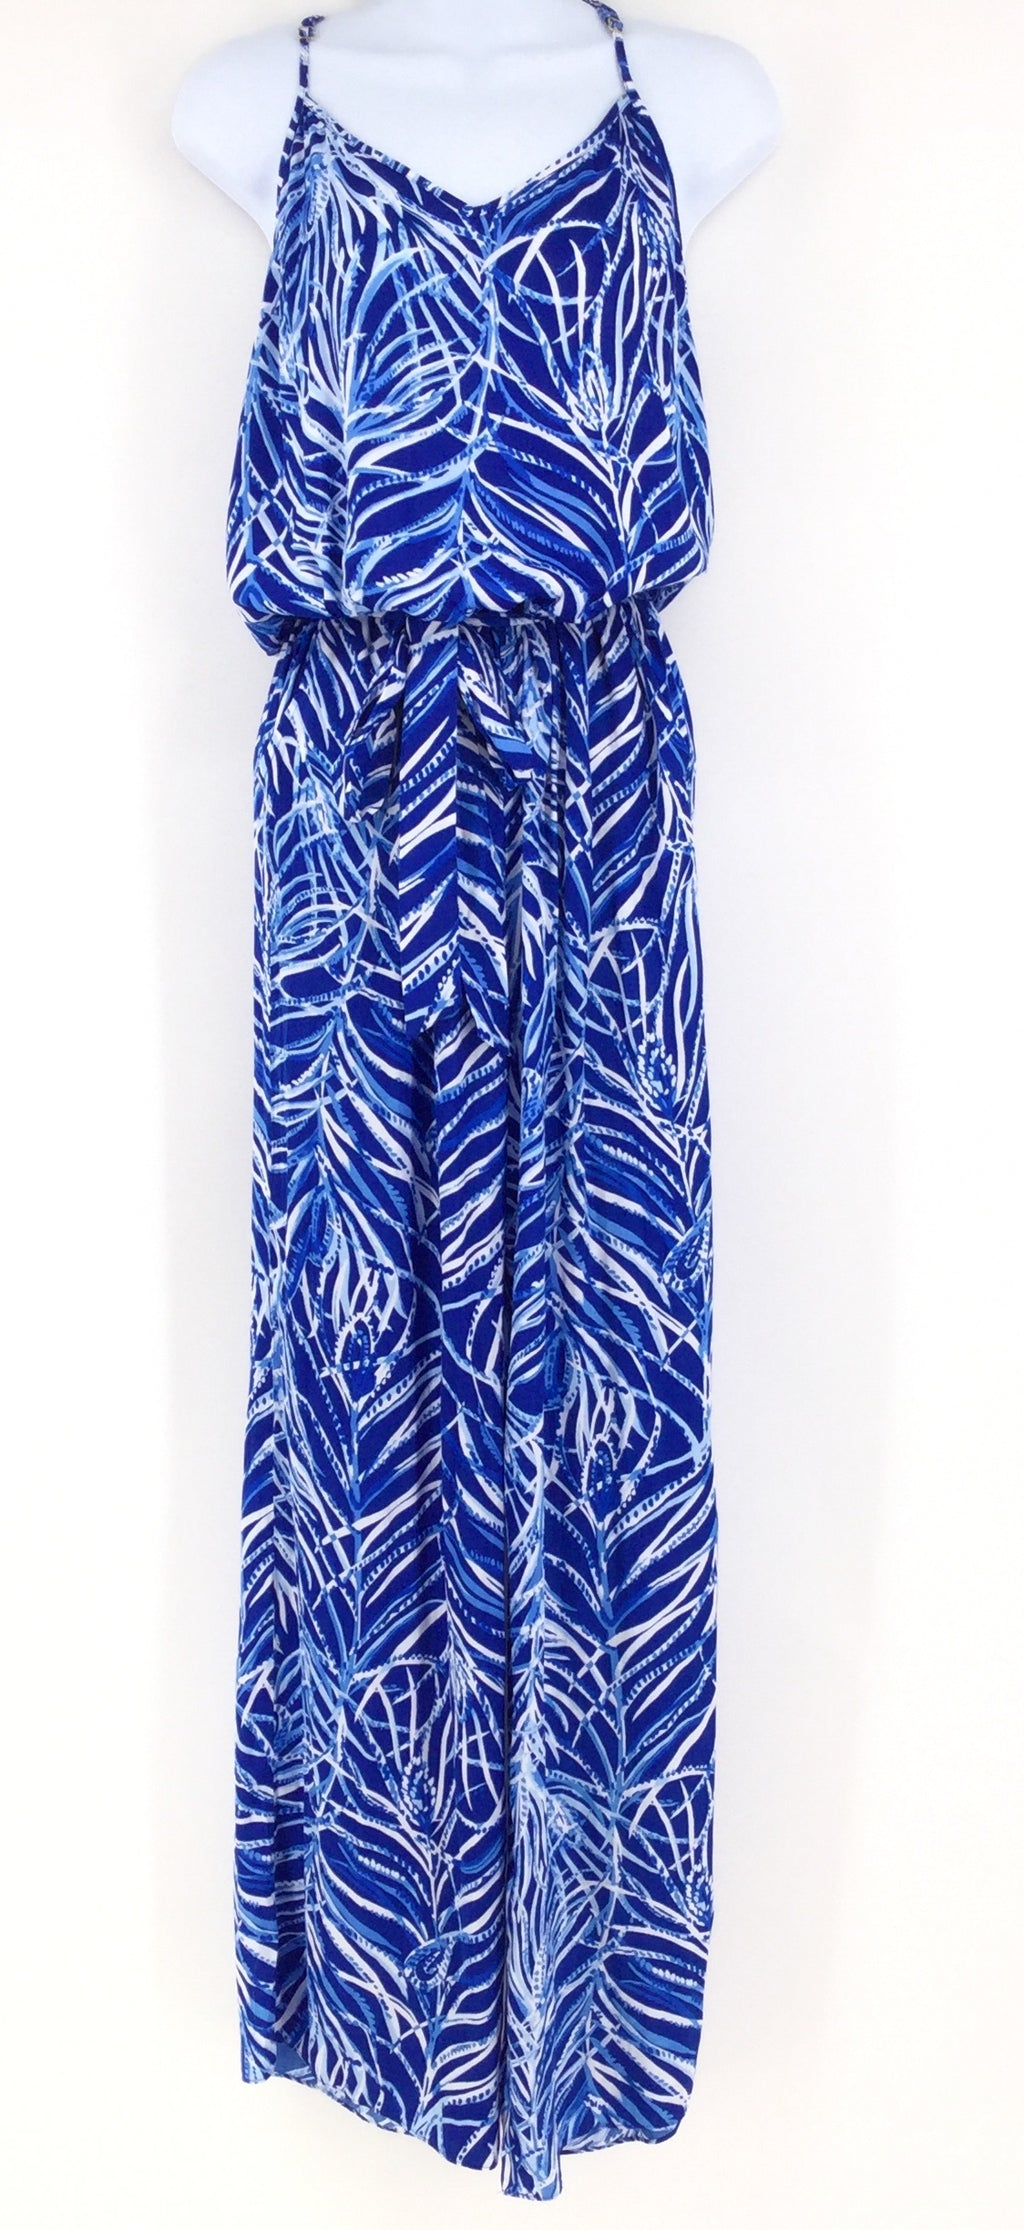 NEW WITH TAGS!! Blue and White Lilly Pulitzer Jumpsuit Size:s